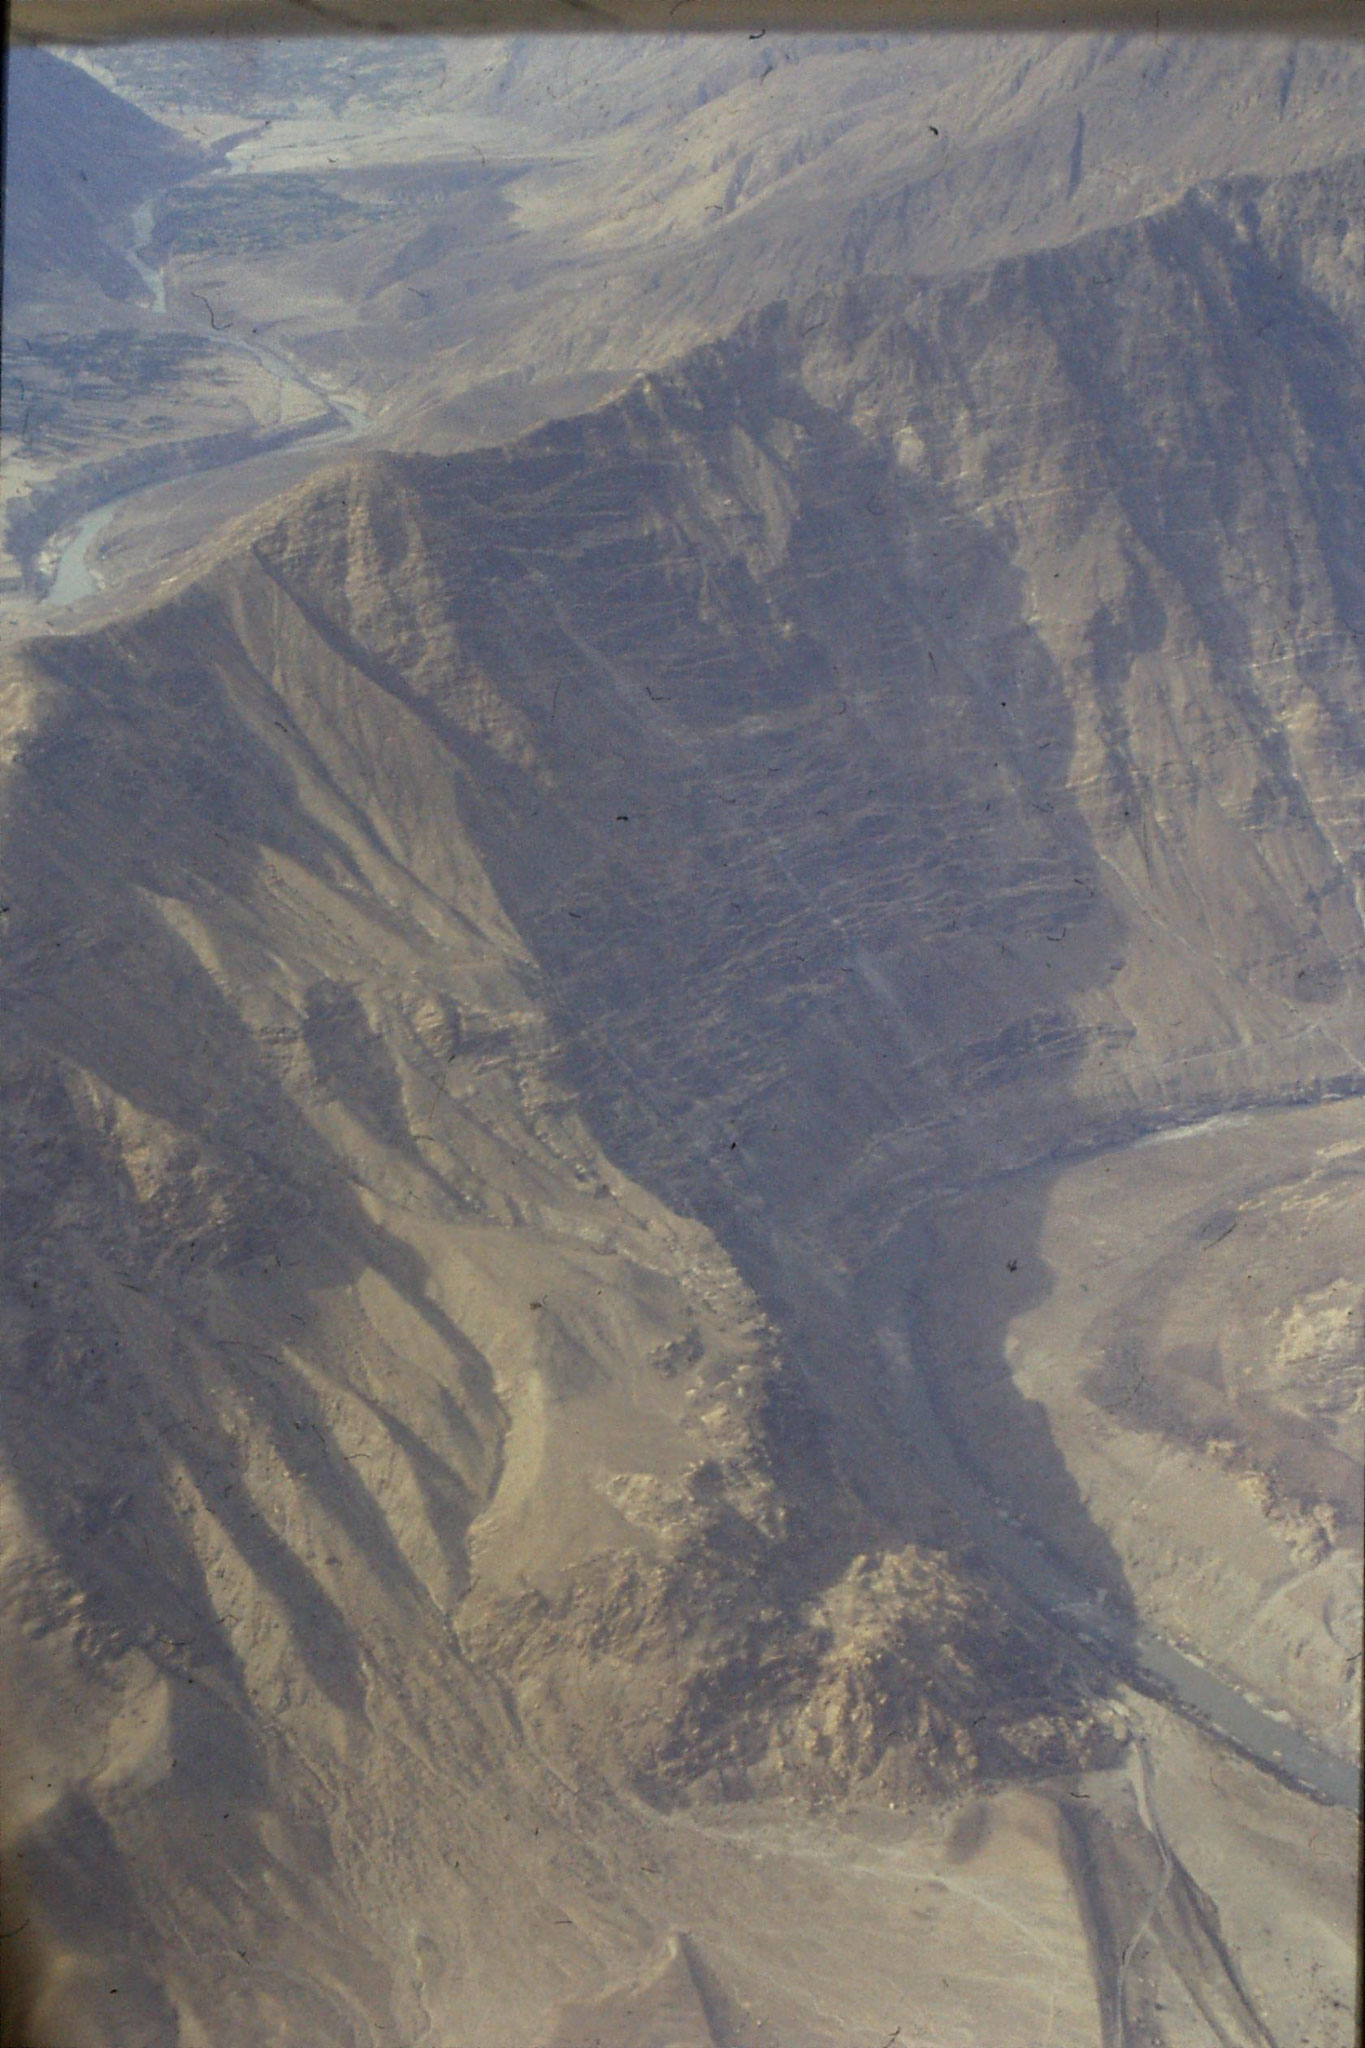 22/10/1989: 22: confluence of Indus and Gilgit rivers